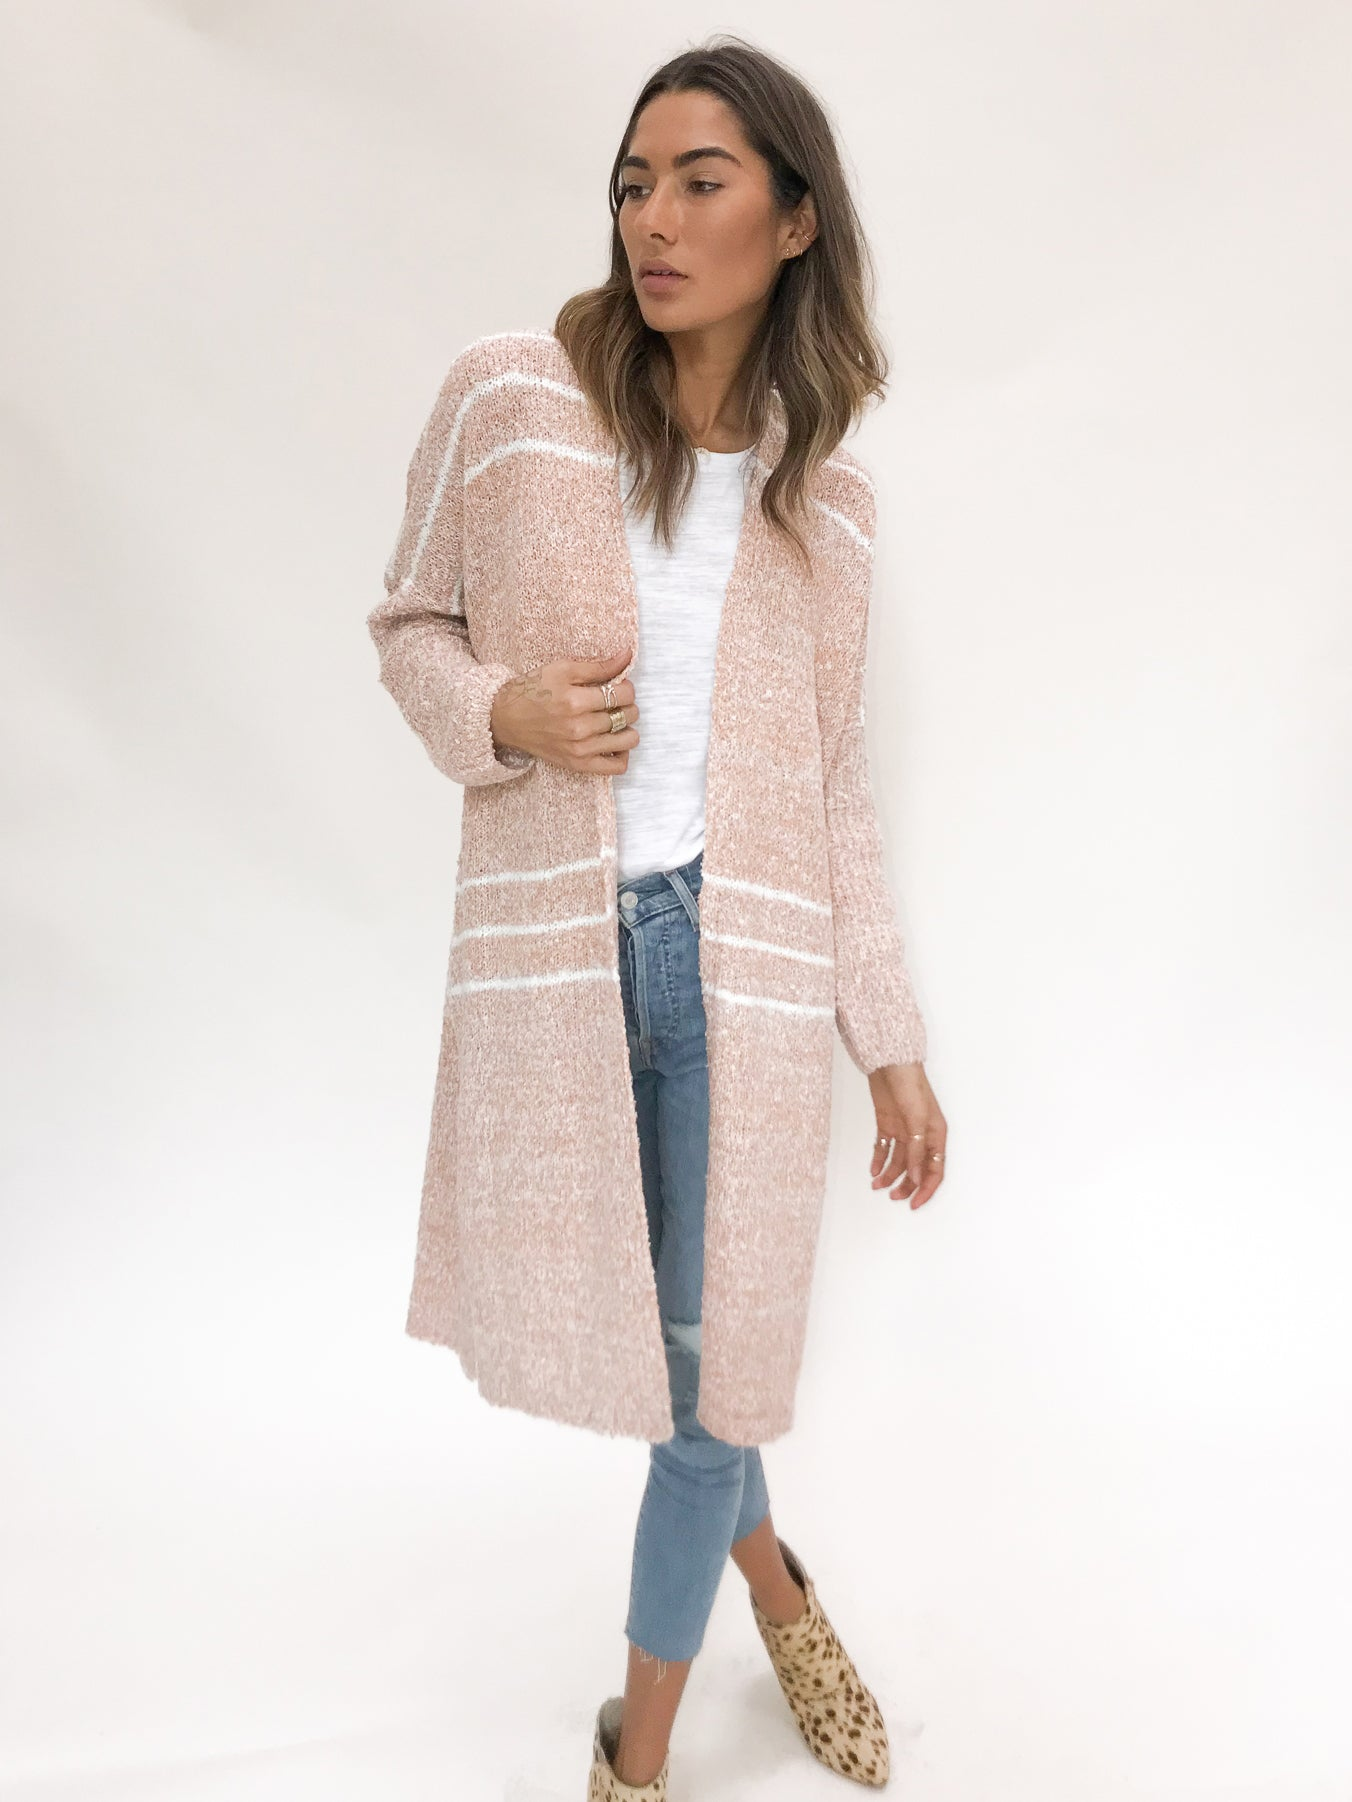 Made Me Blush Cardigan